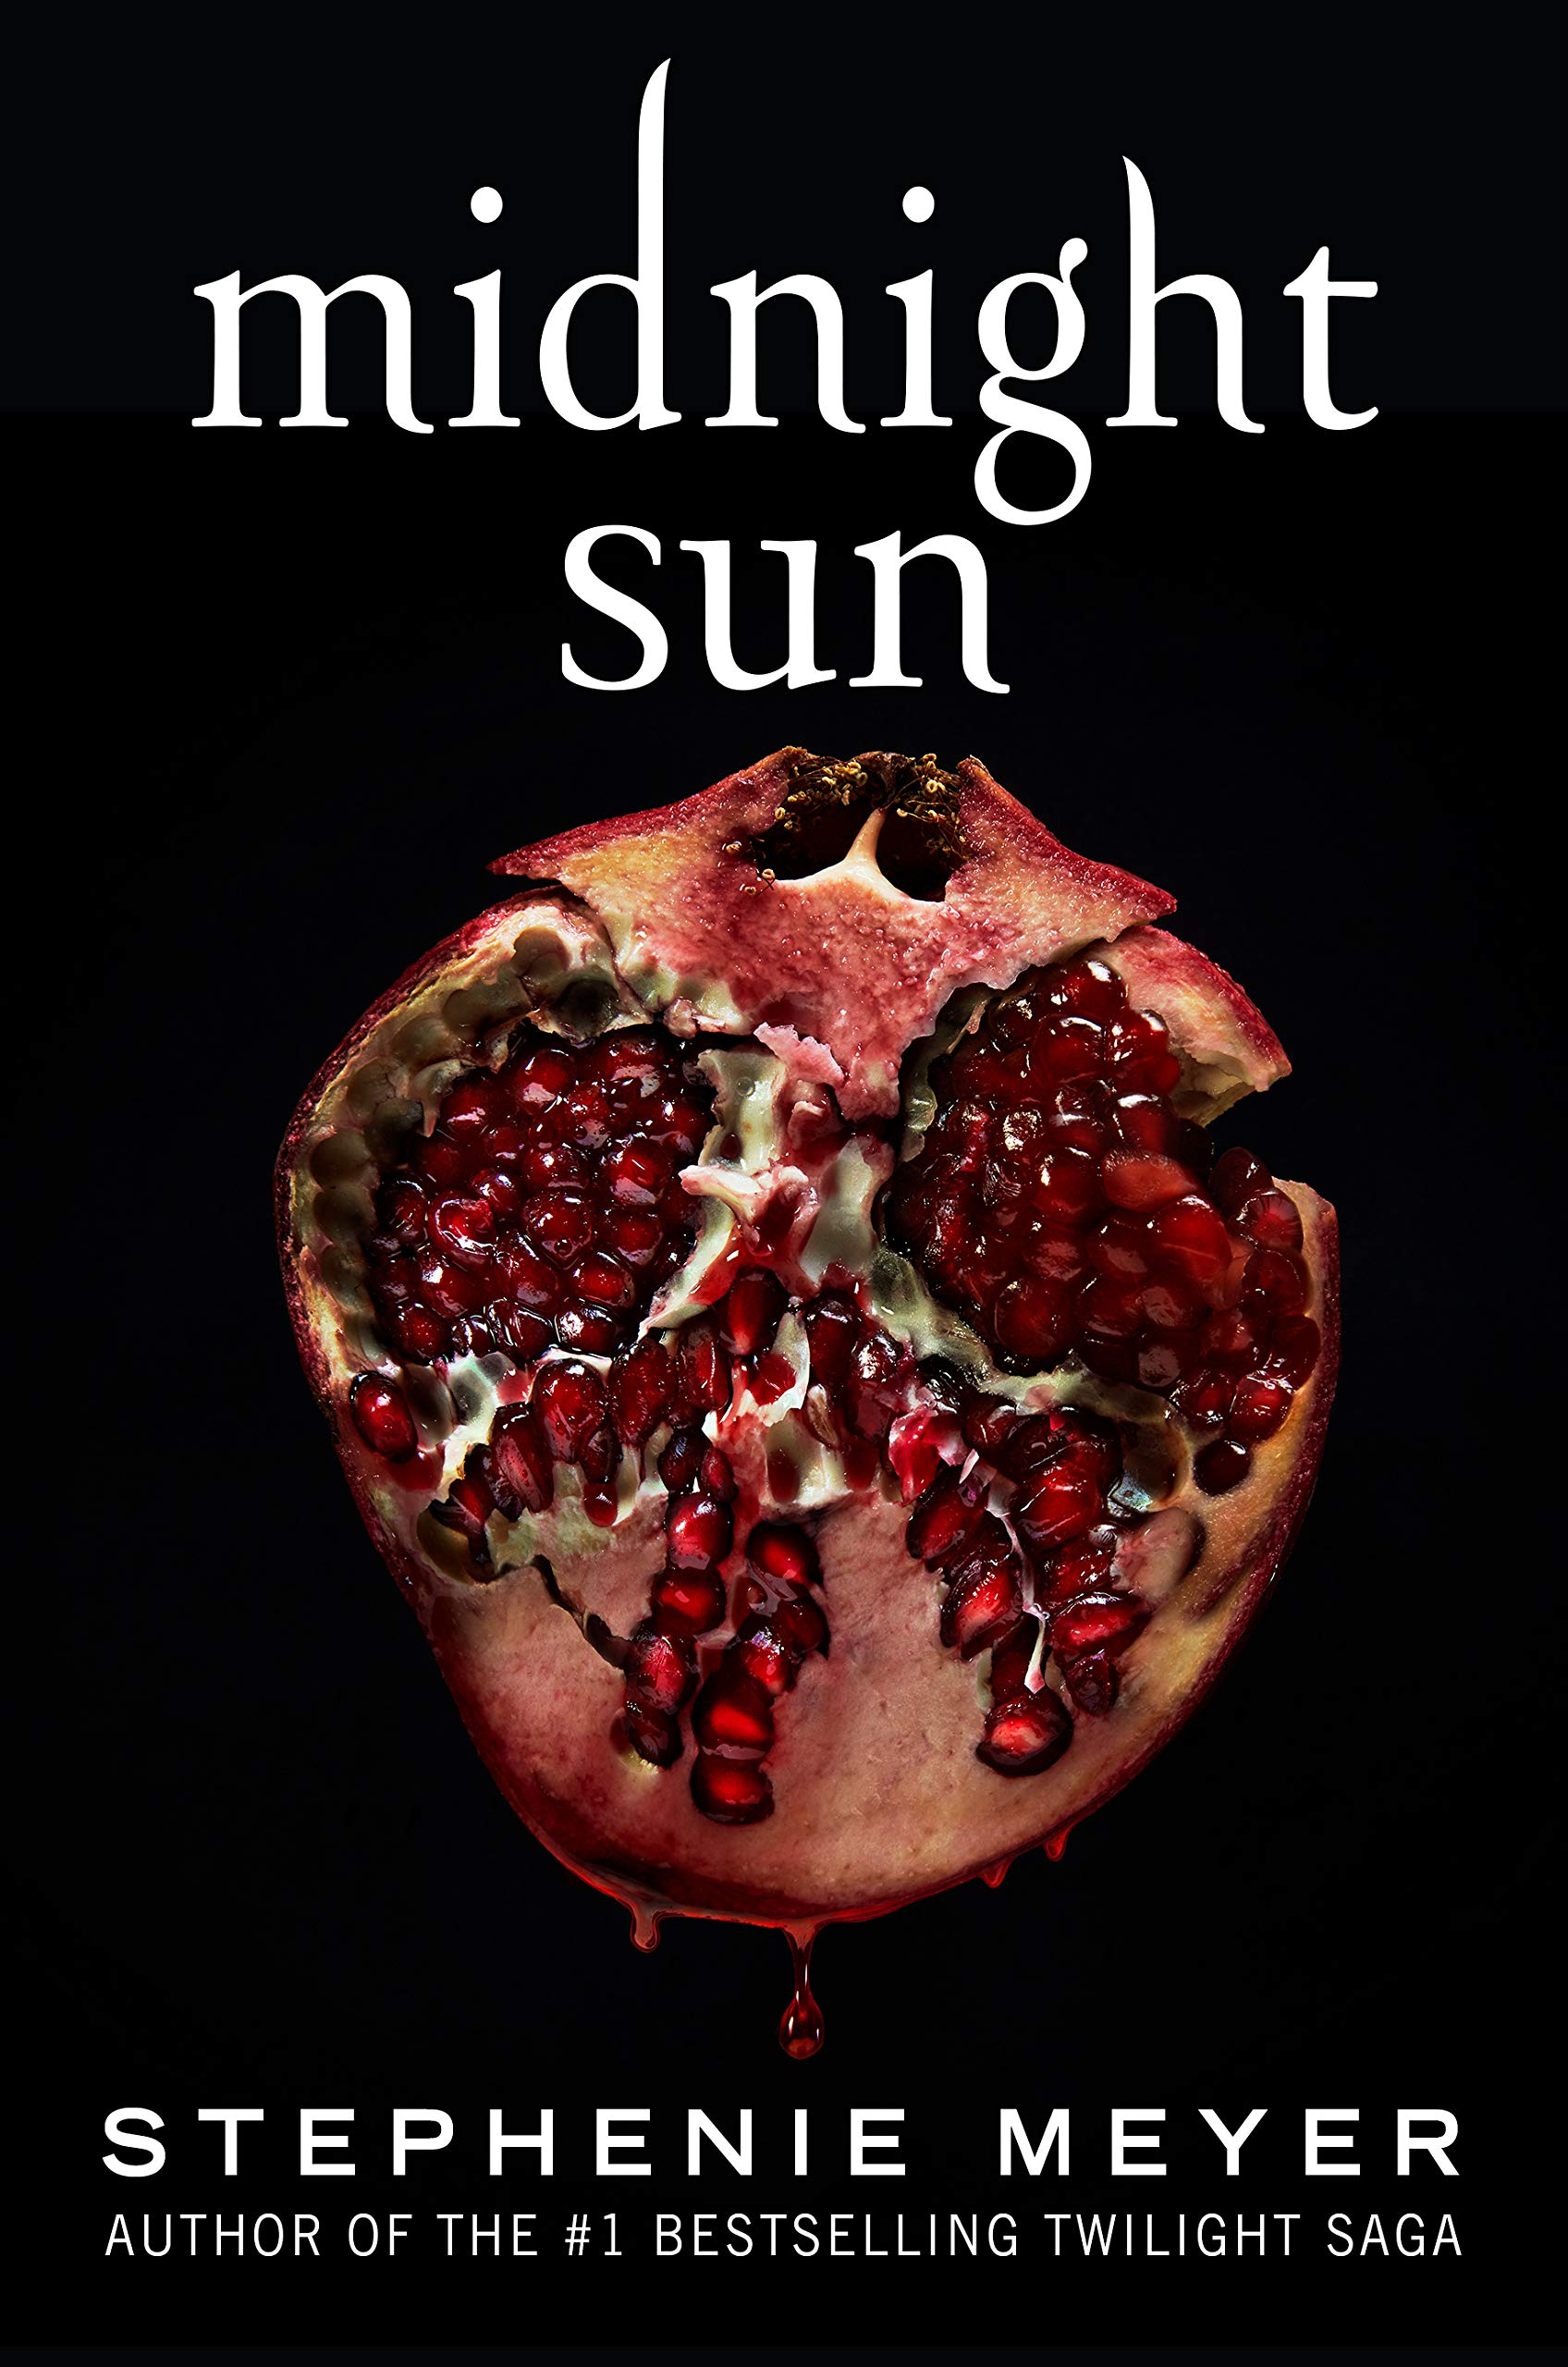 Cover of Midnight Sun, by Stephenie Meyer.  The cover is all black except for the white title at the top and author's name at the bottom, and a giant cross-section of a pomegranate in the center.